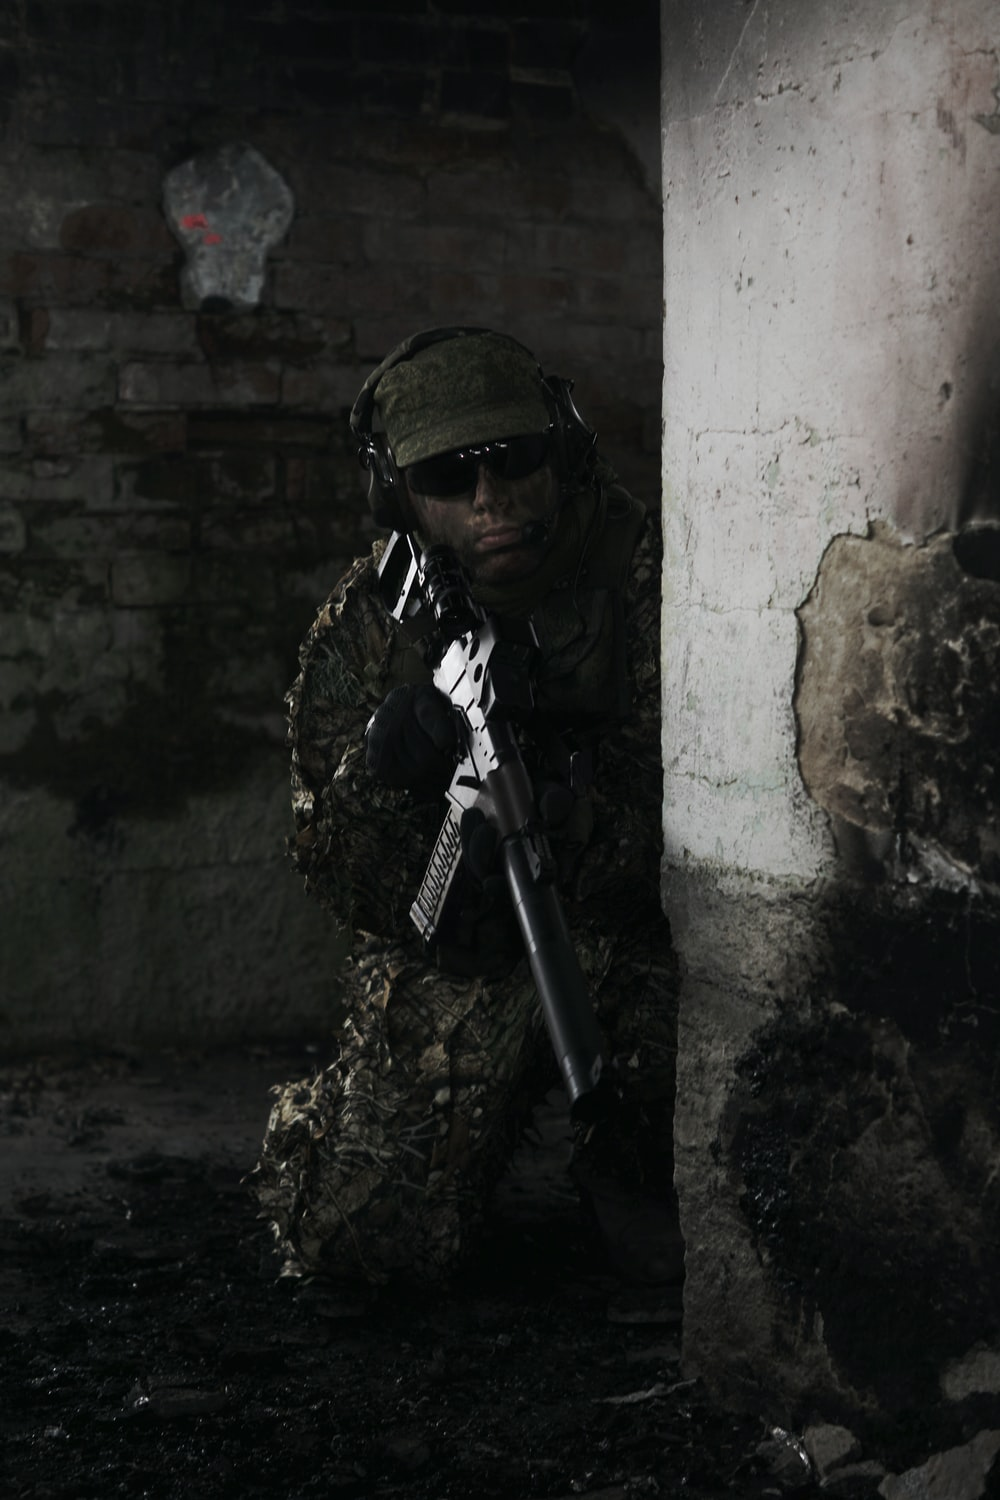 military personal in camouflage carrying rifle